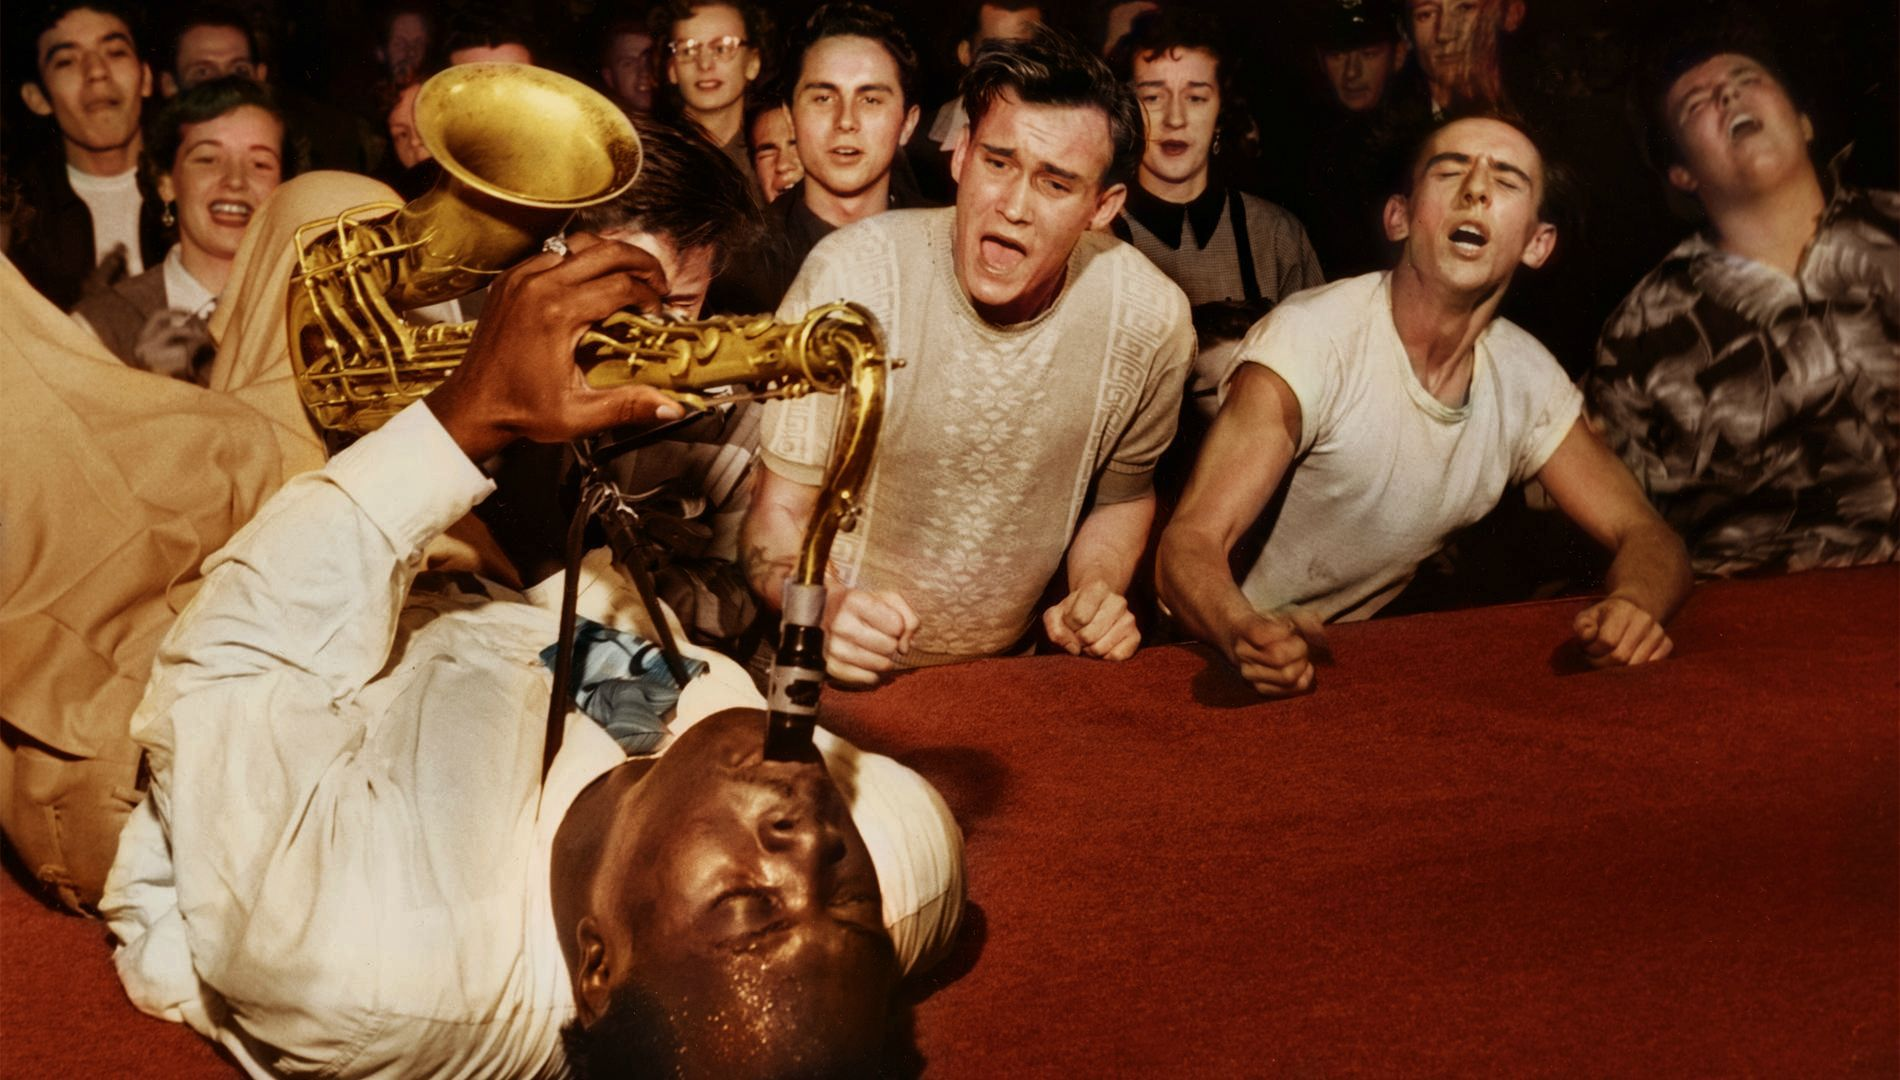 """Colorized photo of Cecil """"Big Jay"""" McNeely (prob. somewhere in LA, early 1950s) - The Godfather Of The Rock & Roll Saxophone, King Of The Honking Saxophone, The Go! Go! Go! Man, """"a jazz musician who was playing for people who wanted to dance"""". Read this:  http://www.jazzwax.com/2009/07/interview-big-jay-mcneely-part-1.html"""